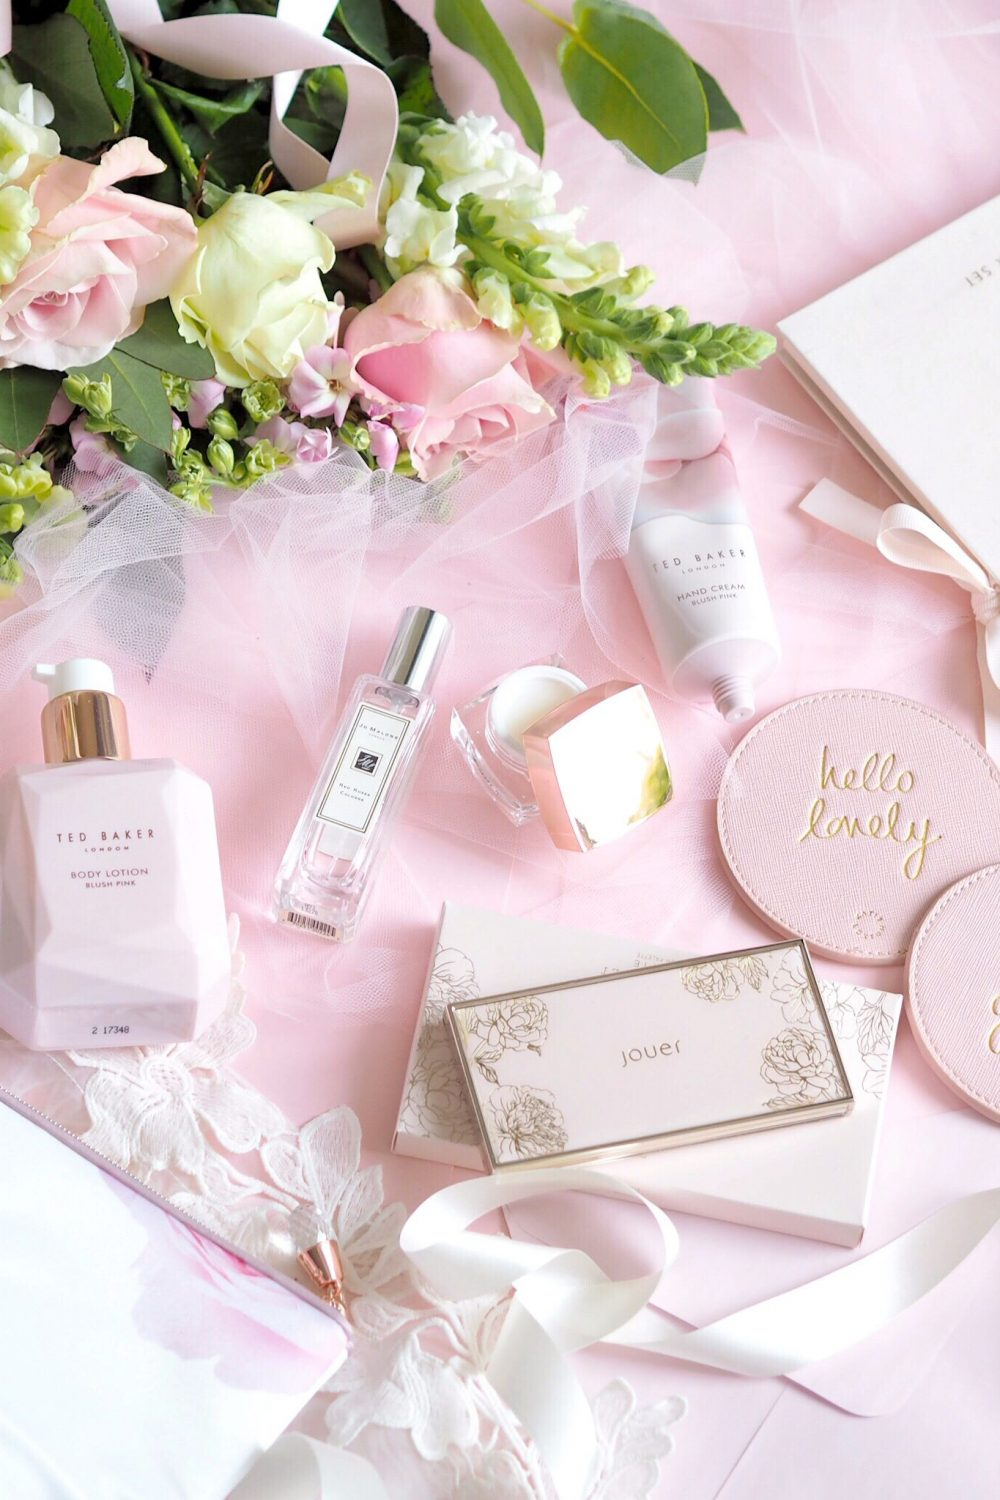 Special Gifts For Mother's Day